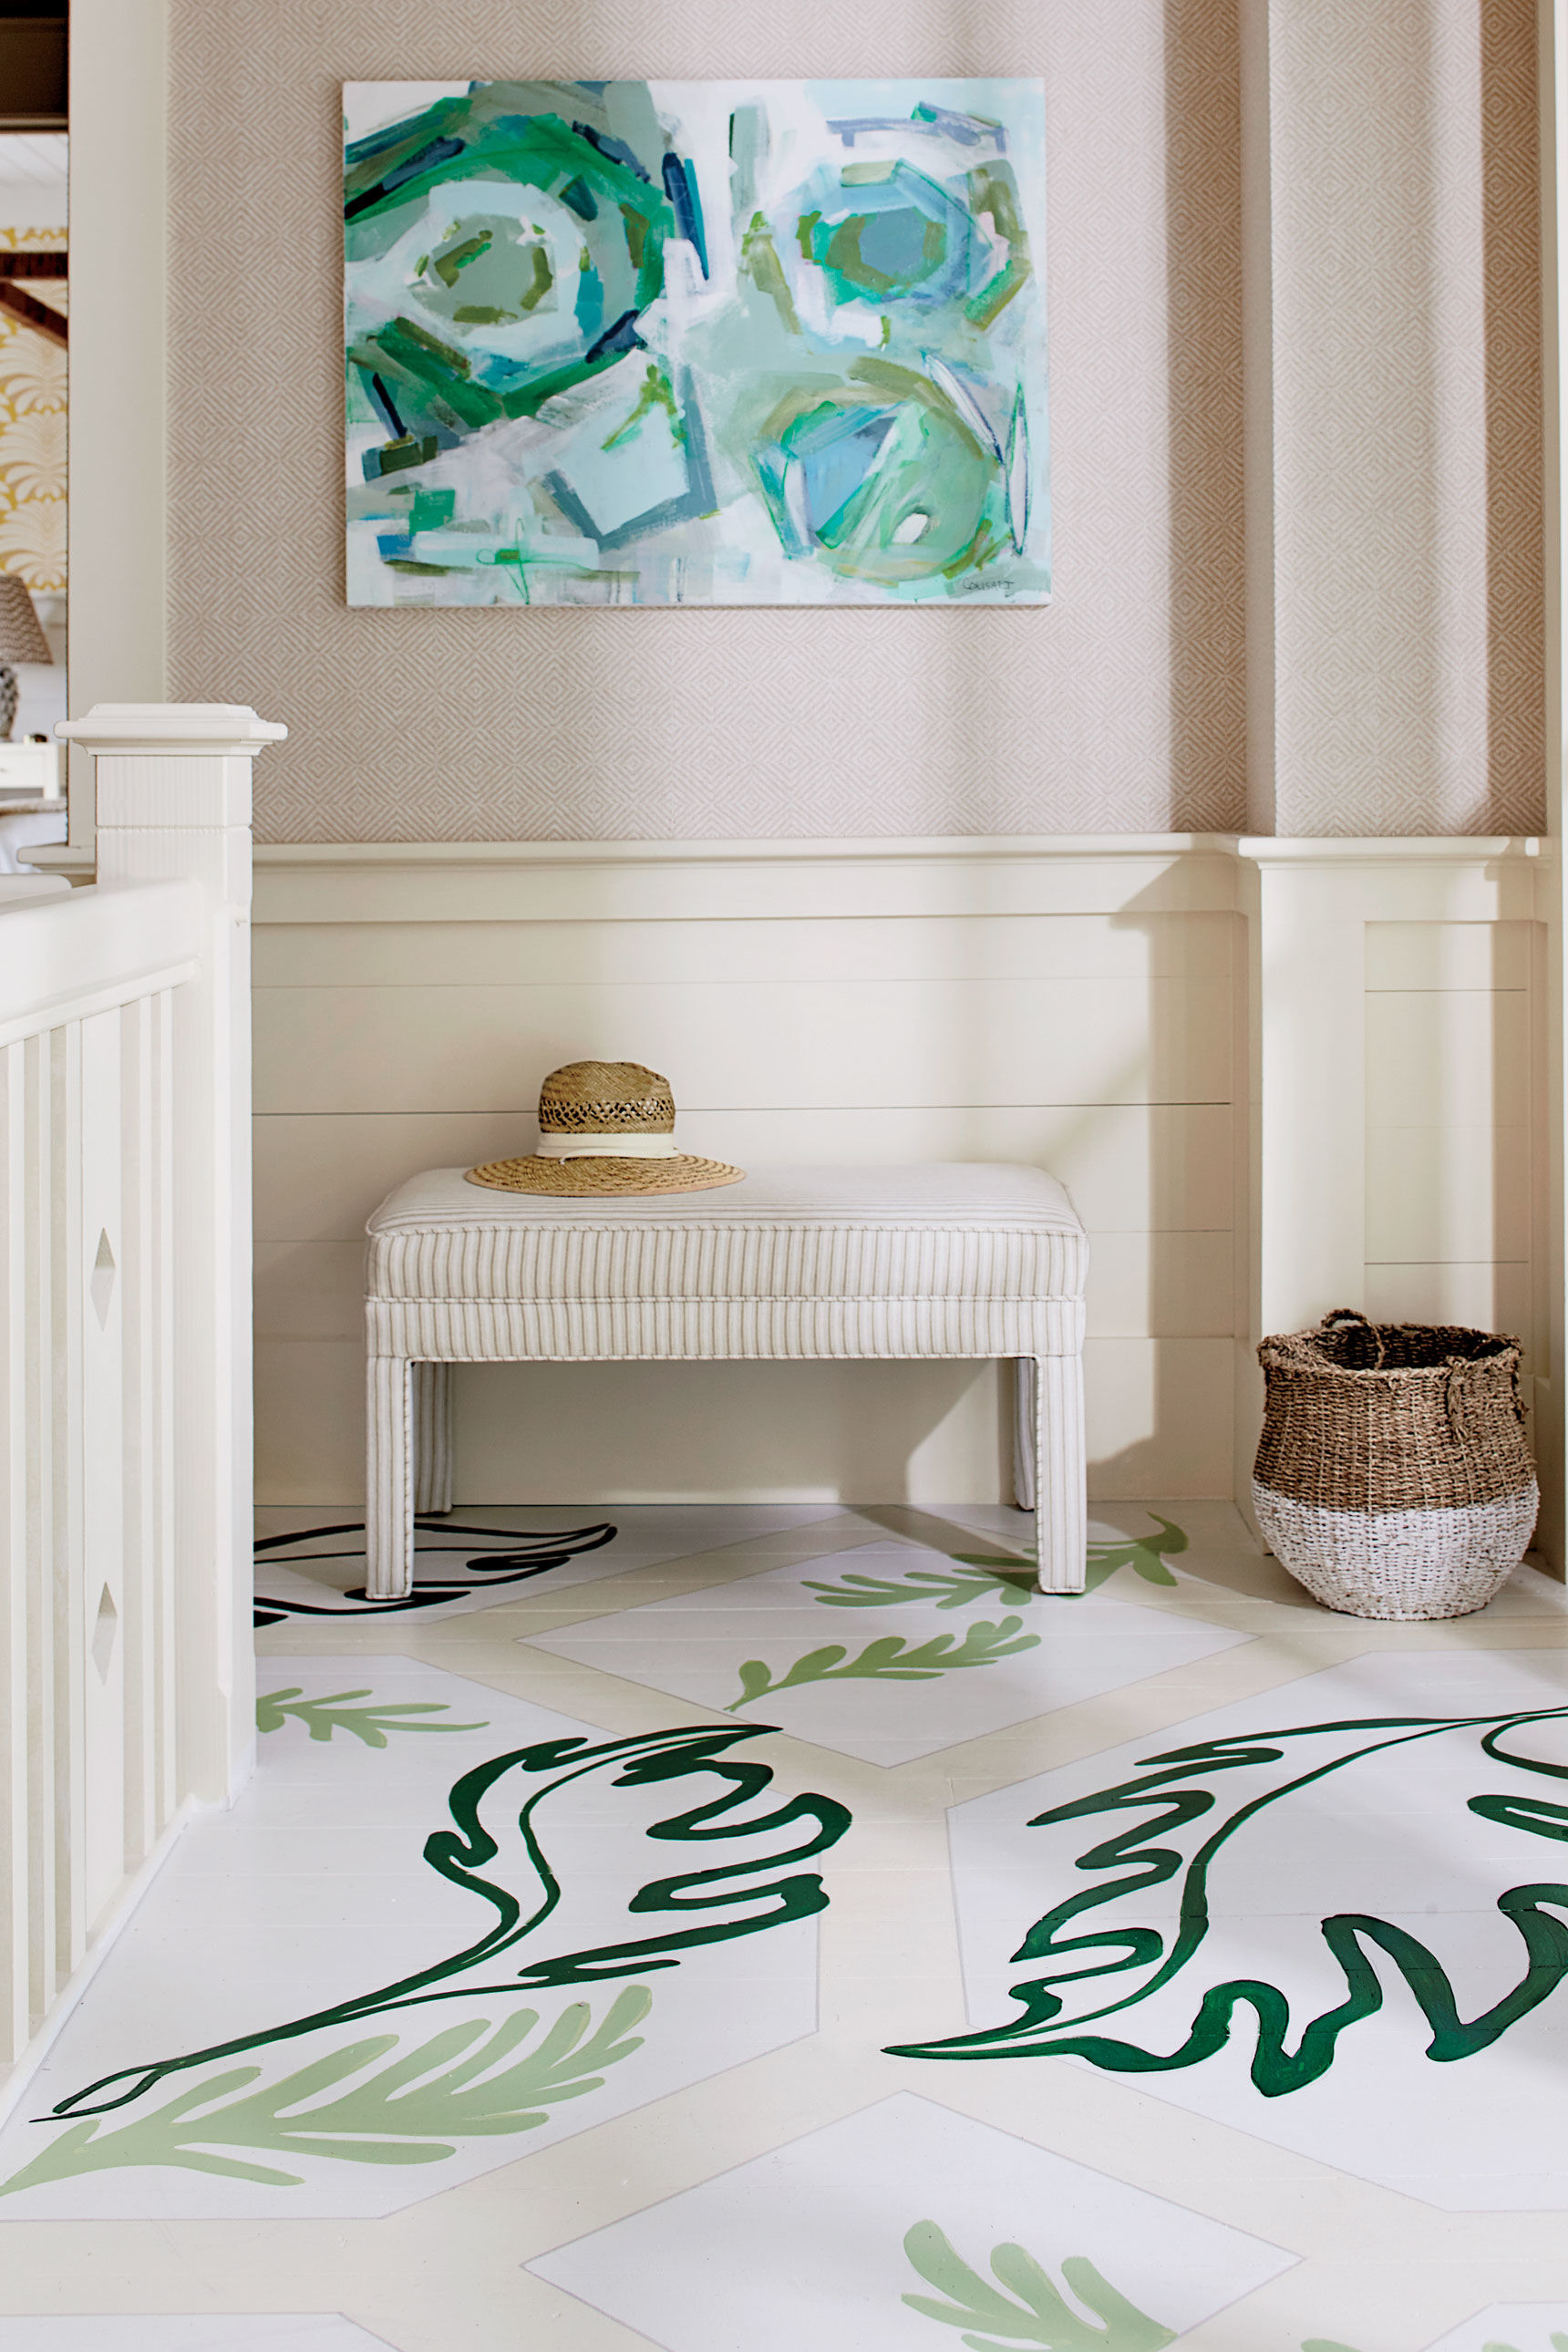 How to Paint Your Floors and Not Mess It Up